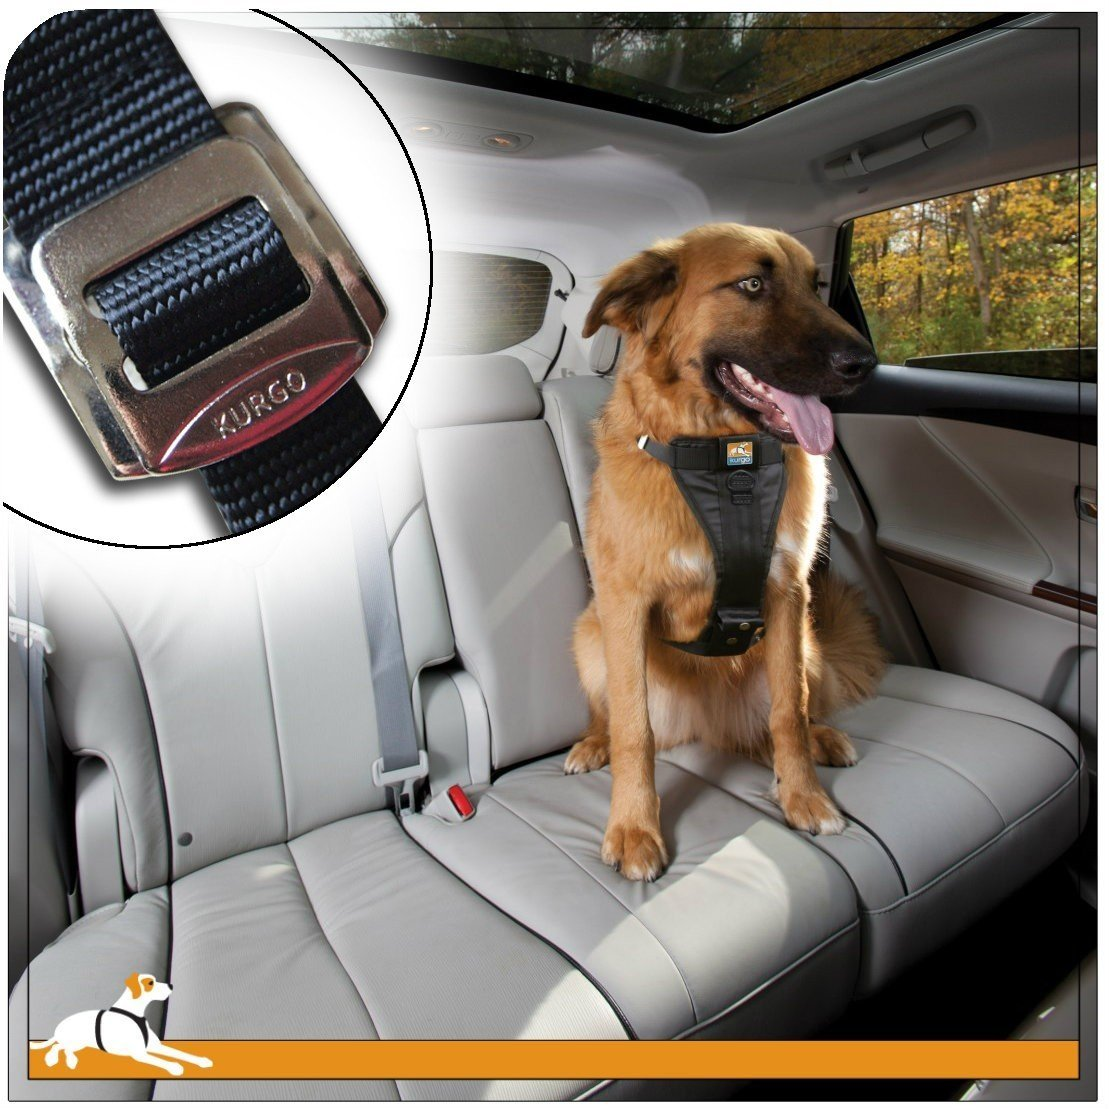 Dog in car wearing Kurgo Tru-fit